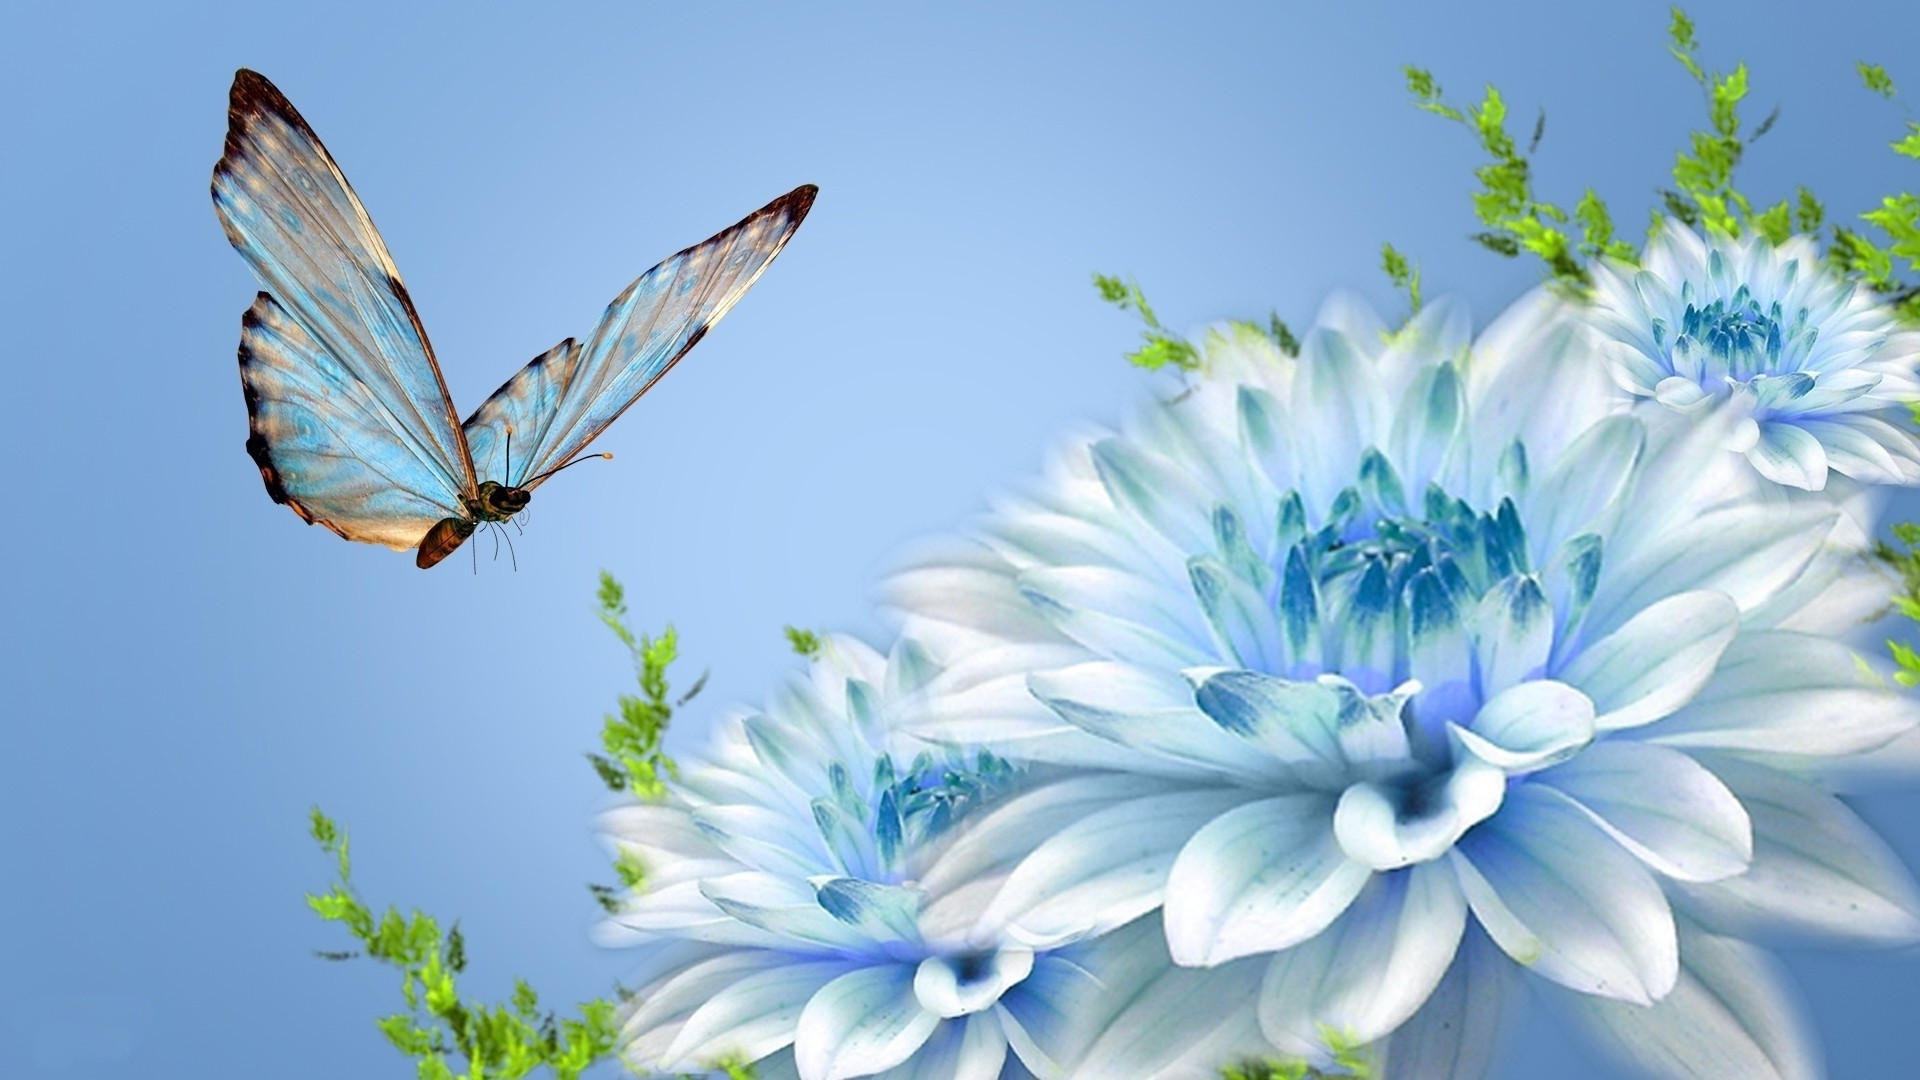 flowers nature butterfly flower summer beautiful flora garden color floral leaf delicate insect bright close-up desktop